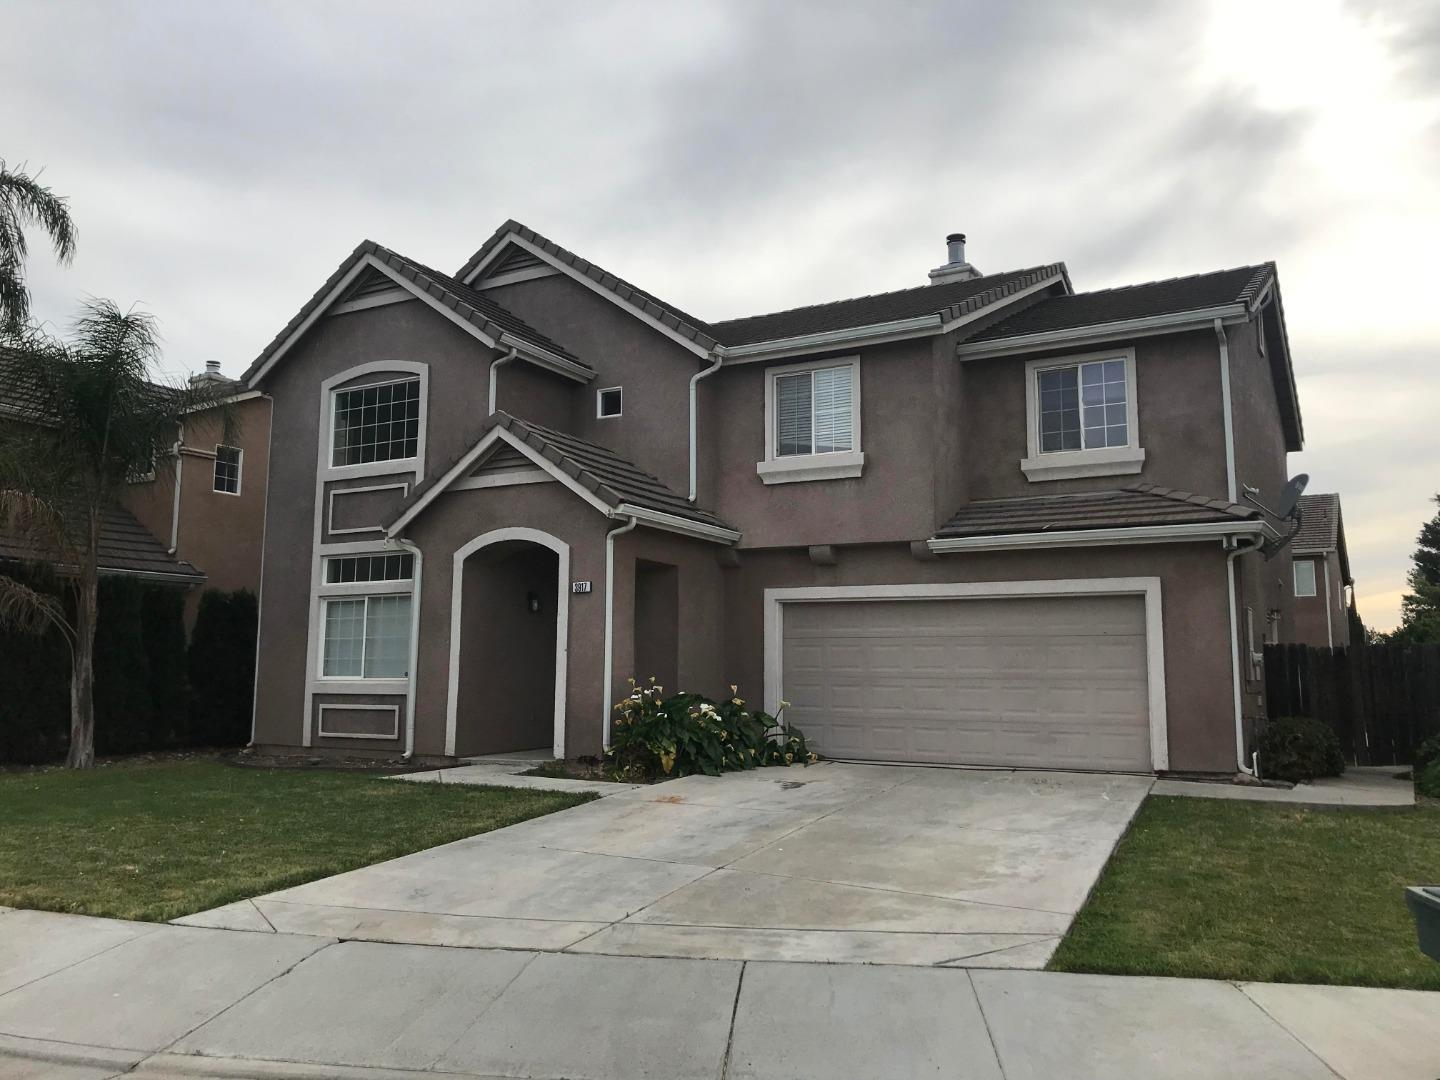 Image for 3917 Chateau Lane, <br>Tracy 95377